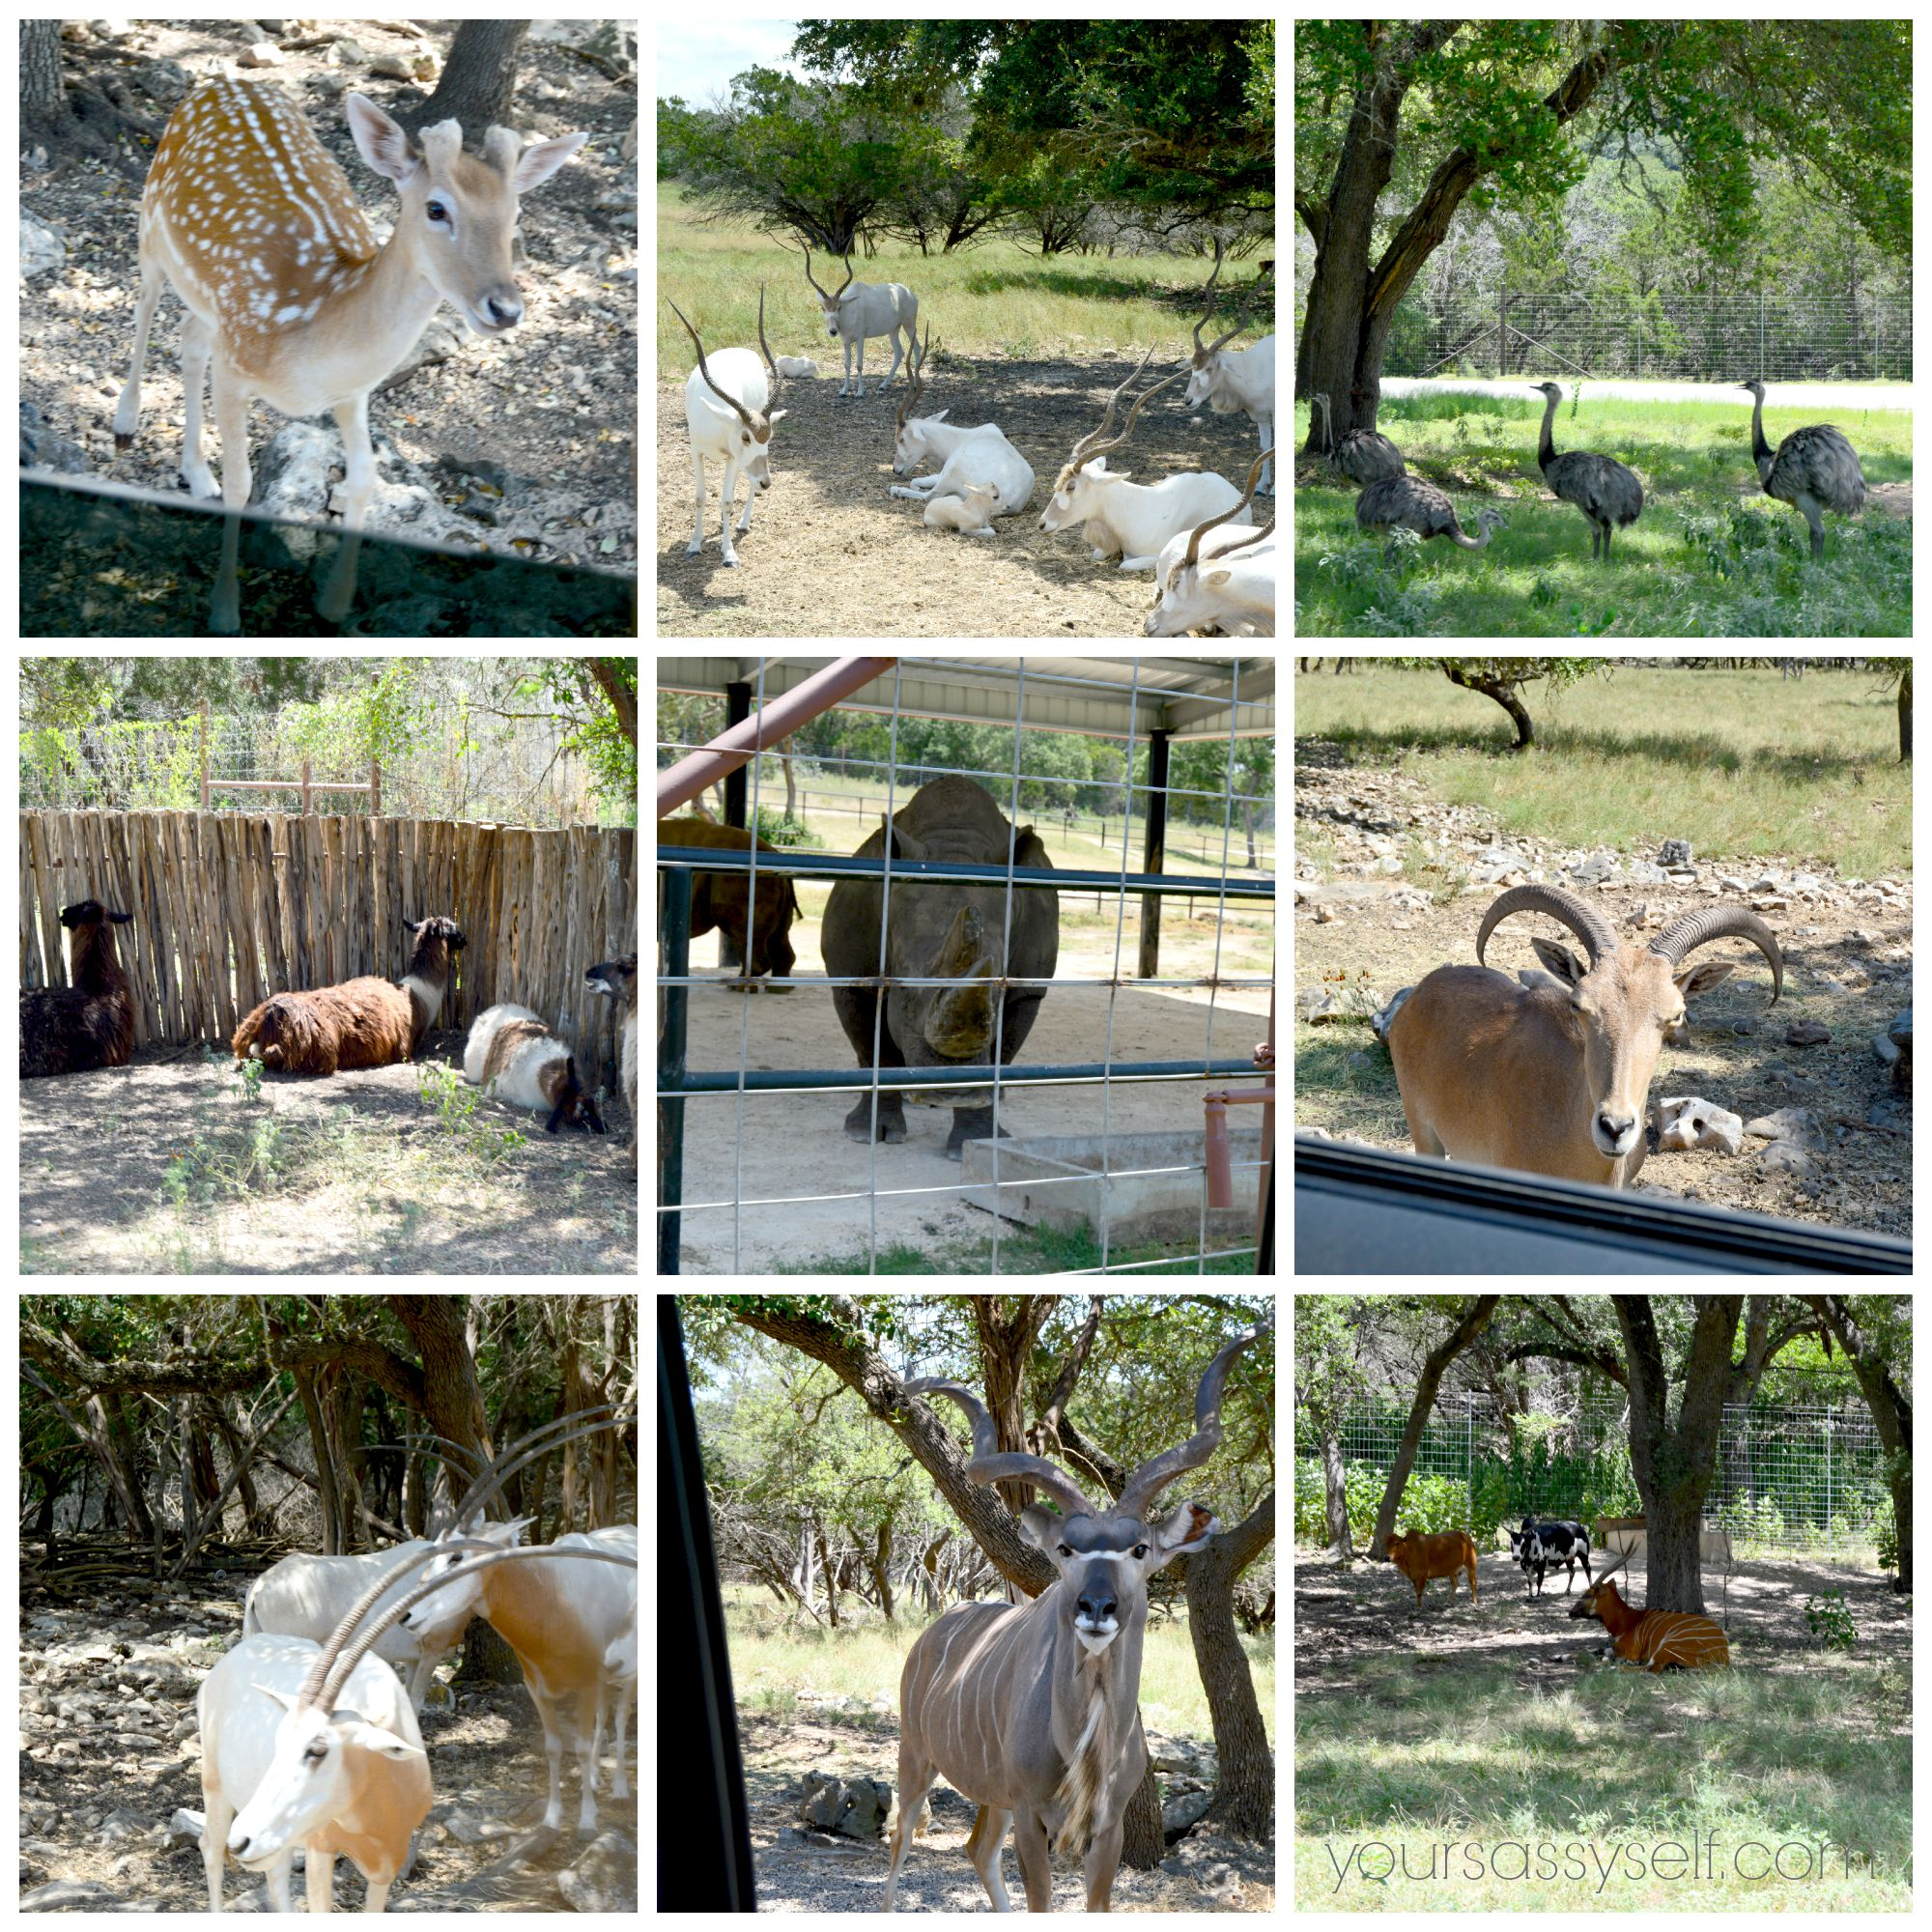 Natural Bridge Wildlife Ranch, Savings and Zoo Park Description for Natural Bridge Wildlife Ranch is a acre zoo located in New Braunfels, Texas. It is home to over animals like lemurs, kangaroos, camels, zebras, gazelles and giraffe.